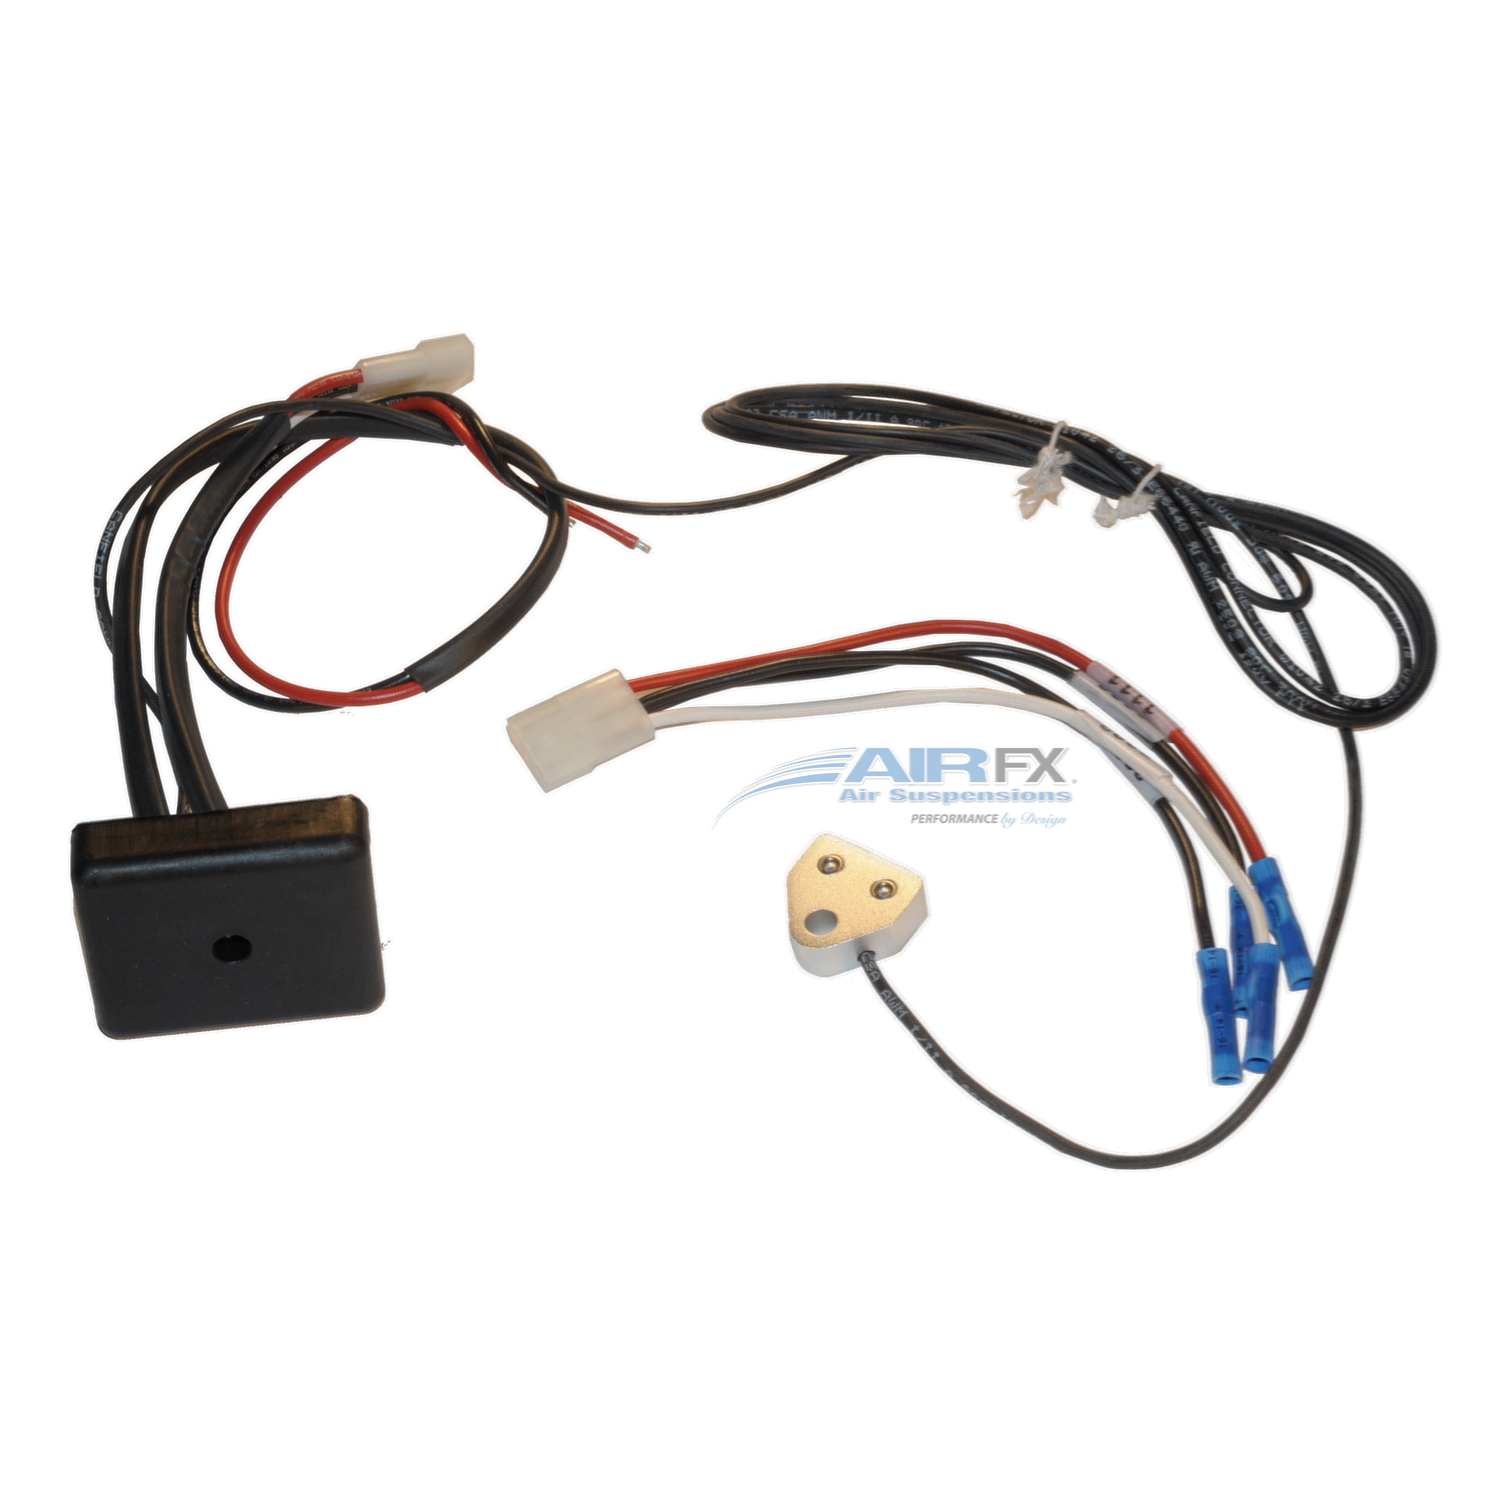 Micro Button Harness, nickel platted - FXA-1010-MB-1 [+$400.00]